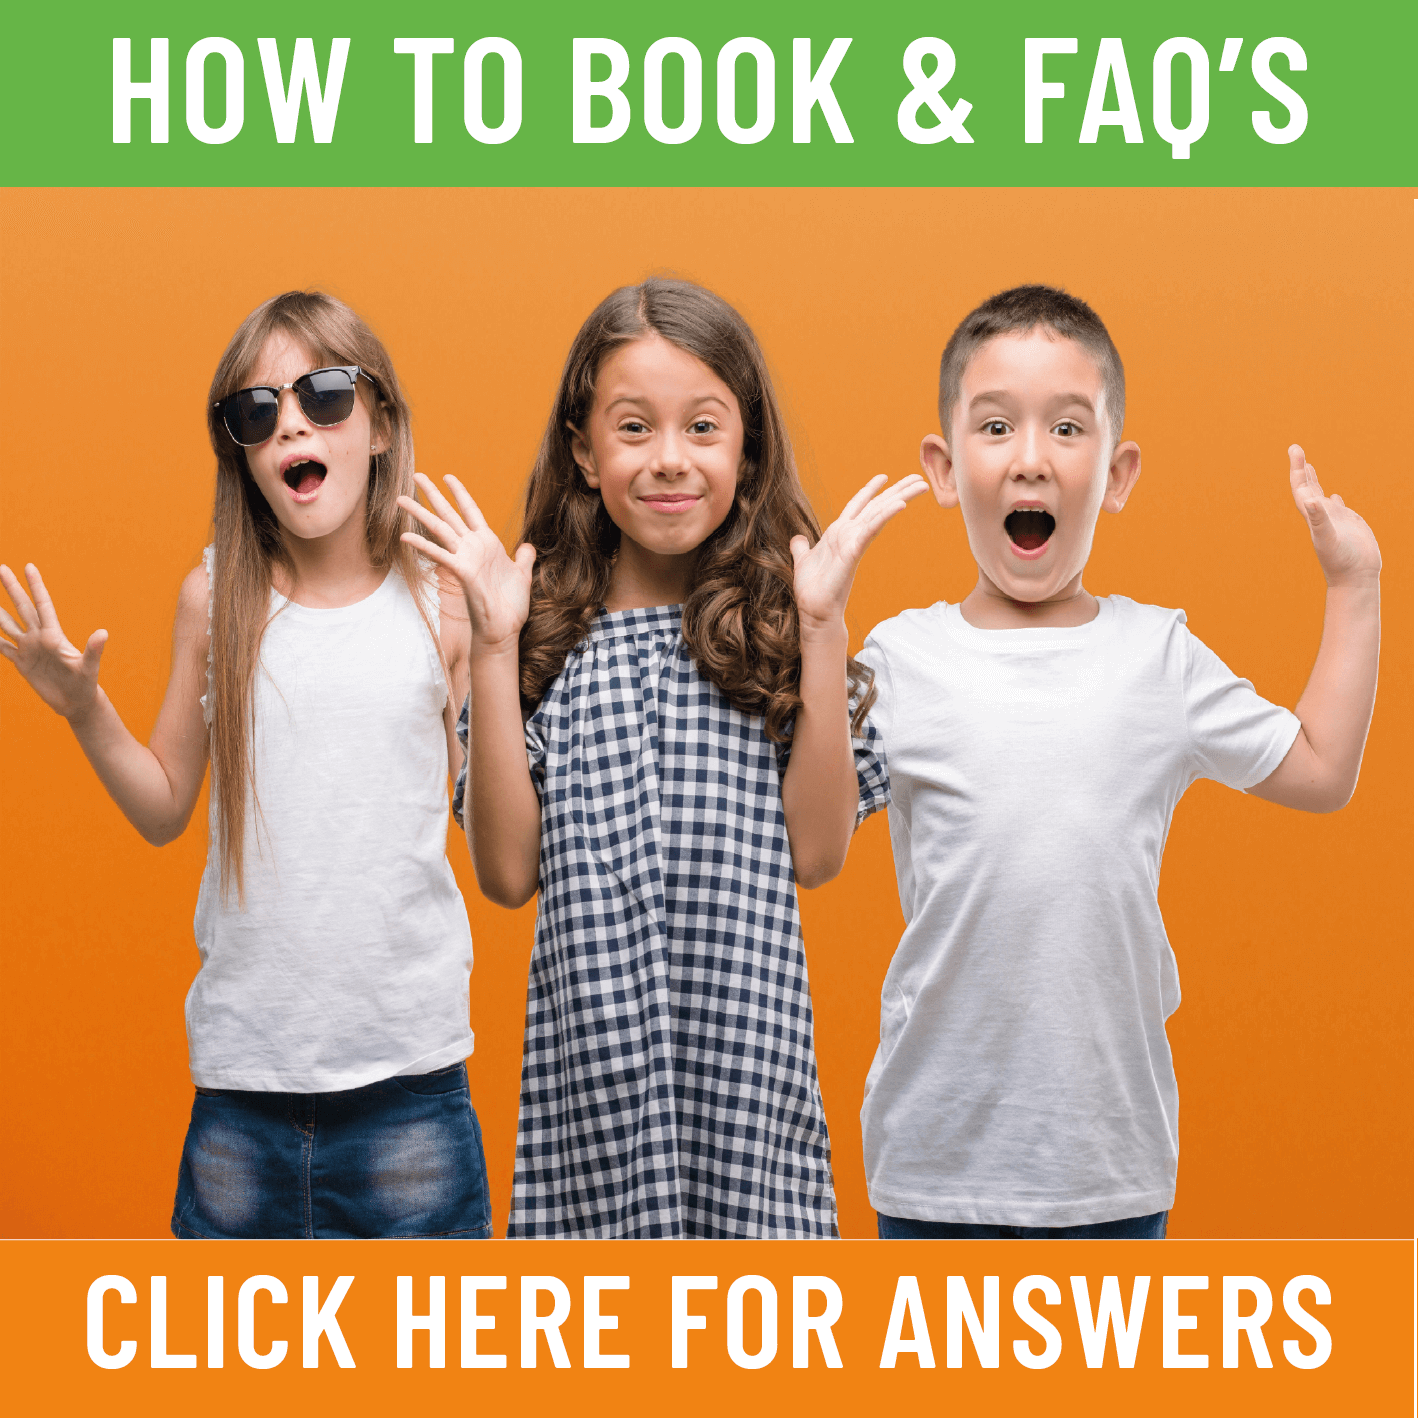 How to Book & FAQs